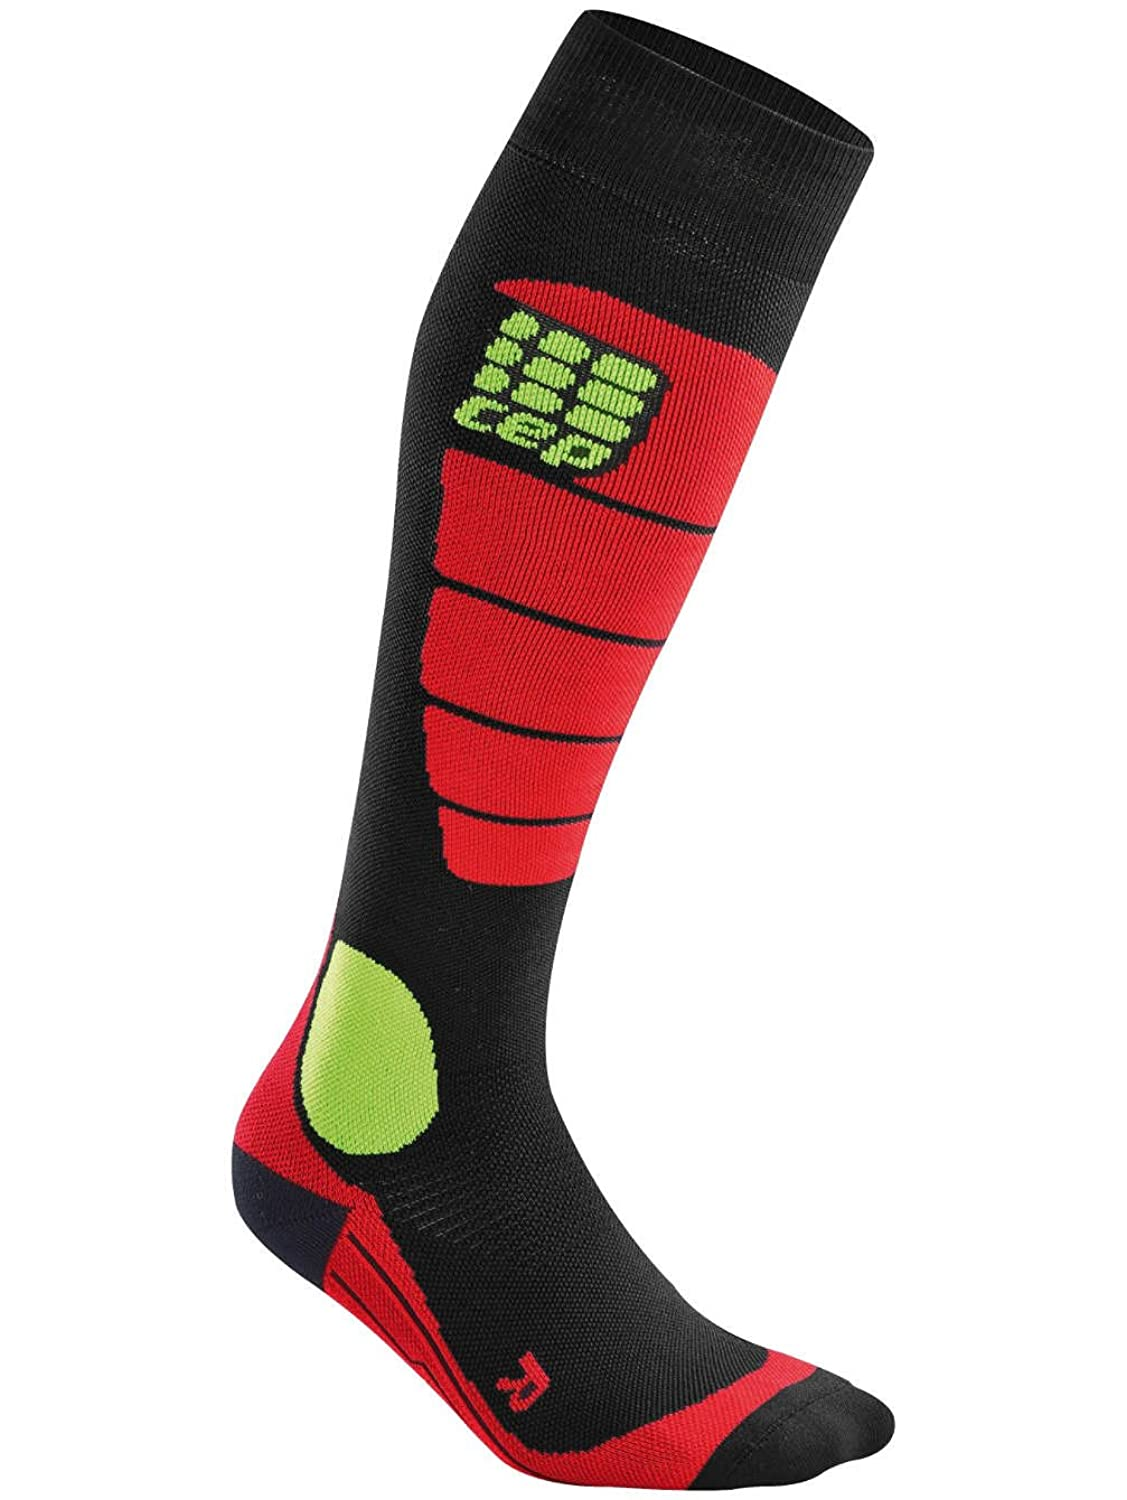 CEP Women's Progressive+ Snowboard Compression Socks - WP40 (black/red - II)